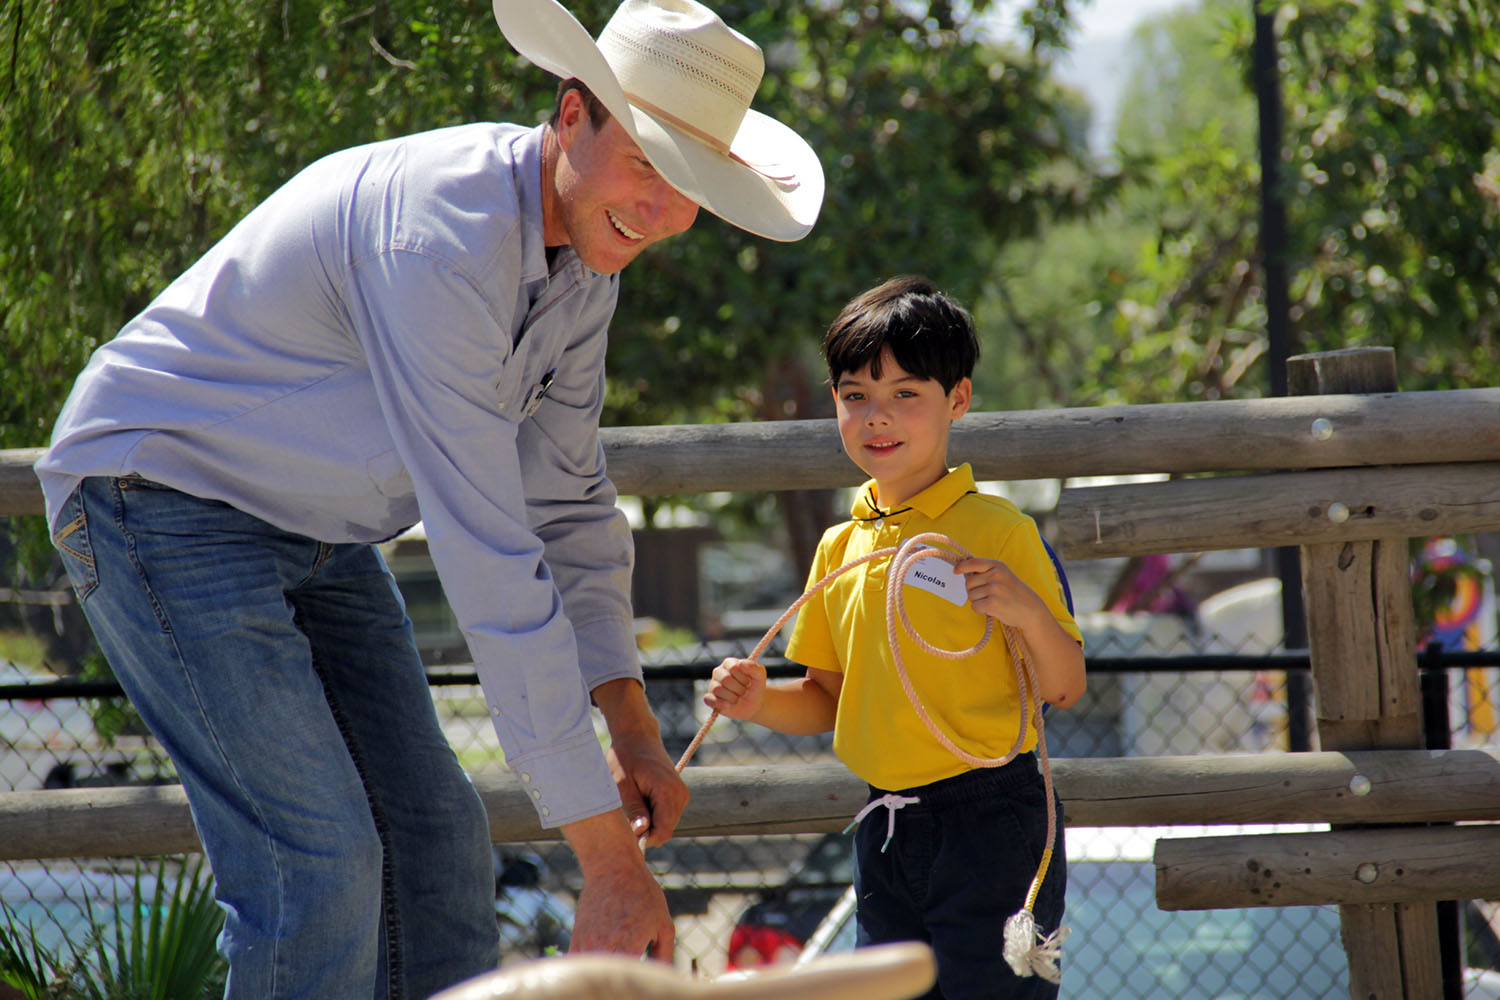 Brent Freese shows Nicolas Fellner how to tighten the rope after lassoing a fake steer. Photo: Shawn Raymundo